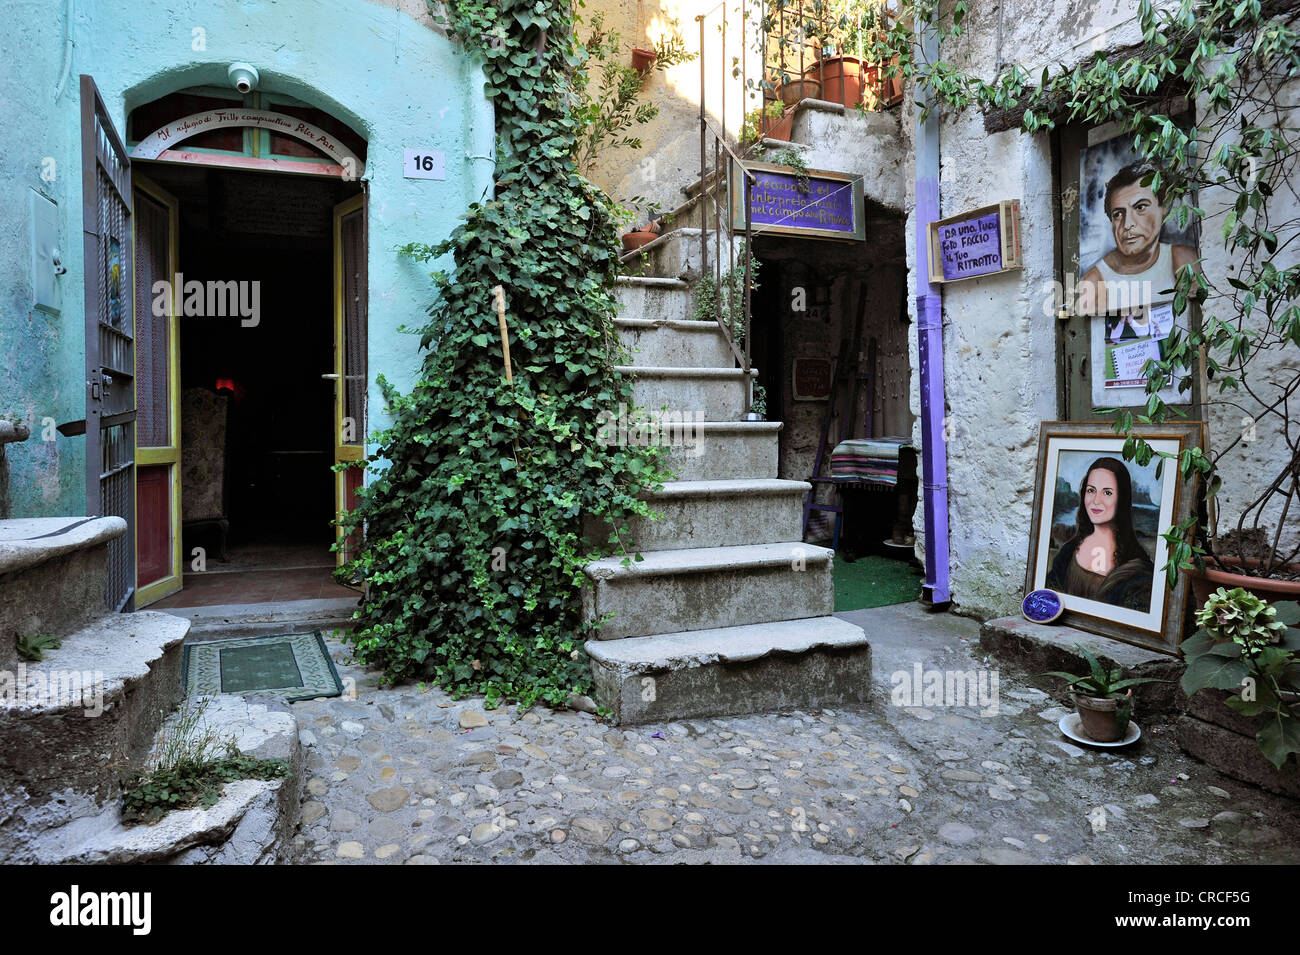 Artist's studio in a narrow lane with stairways and passages, medieval town of Vecchia Calcata, valley of Valle - Stock Image